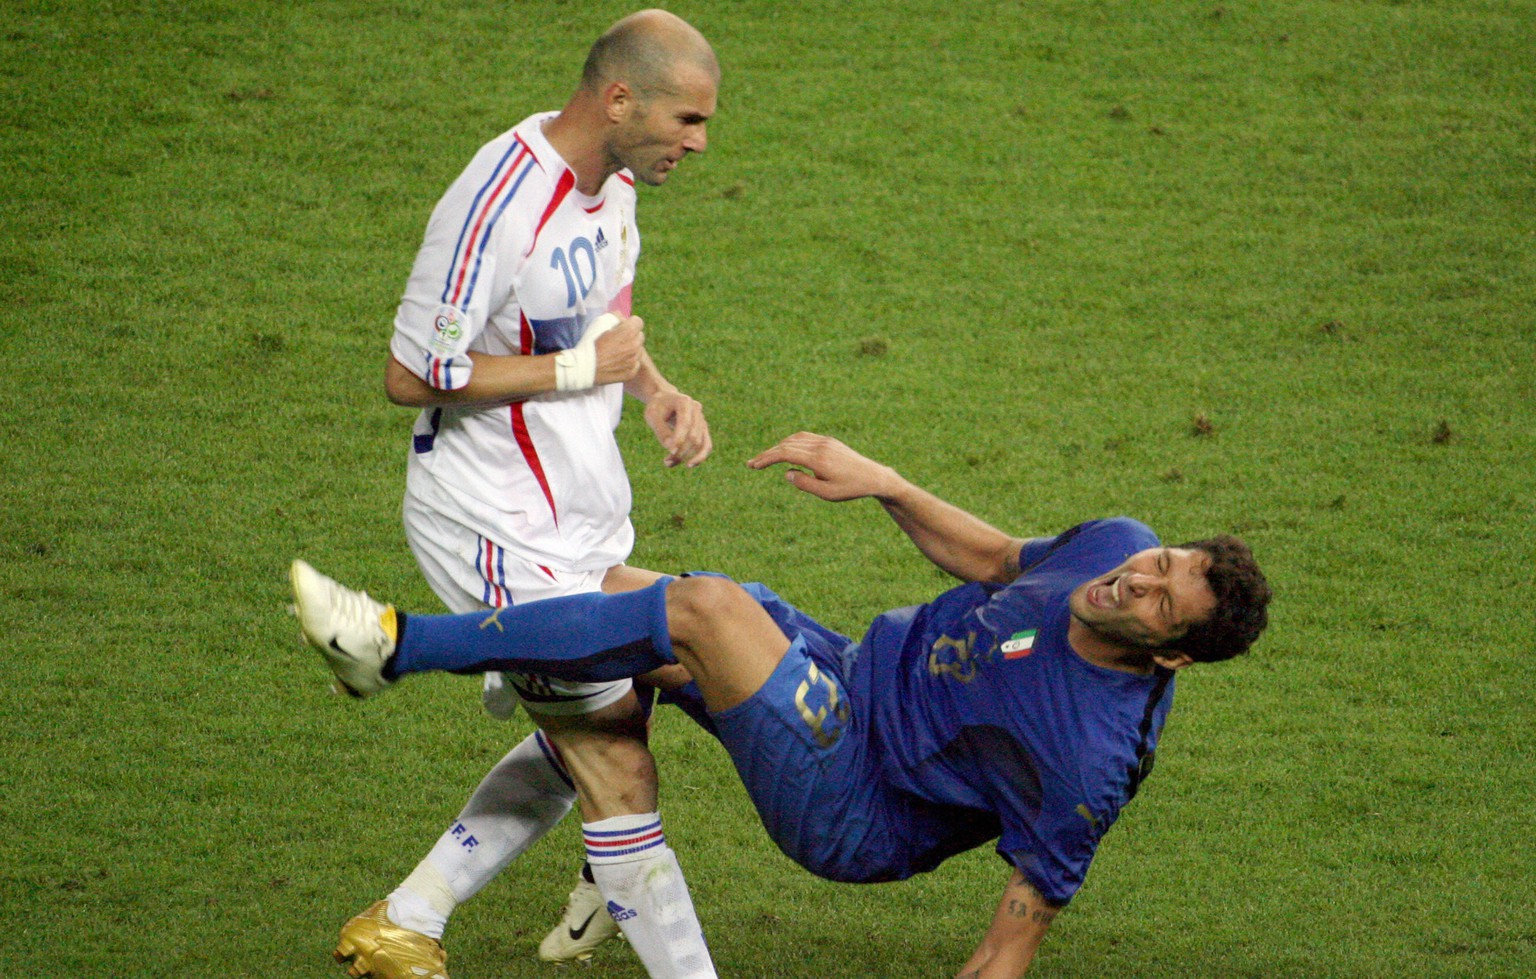 Berlin, GERMANY:  A photo taken 09 July 2006 shows French midfielder Zinedine Zidane (L) gesturing after head-butting Italian defender Marco Materazzi during the World Cup 2006 final football match between Italy and France at Berlin?s Olympic Stadium.  AFP PHOTO  JOHN MACDOUGALL  (Photo credit should read JOHN MACDOUGALL/AFP/Getty Images)